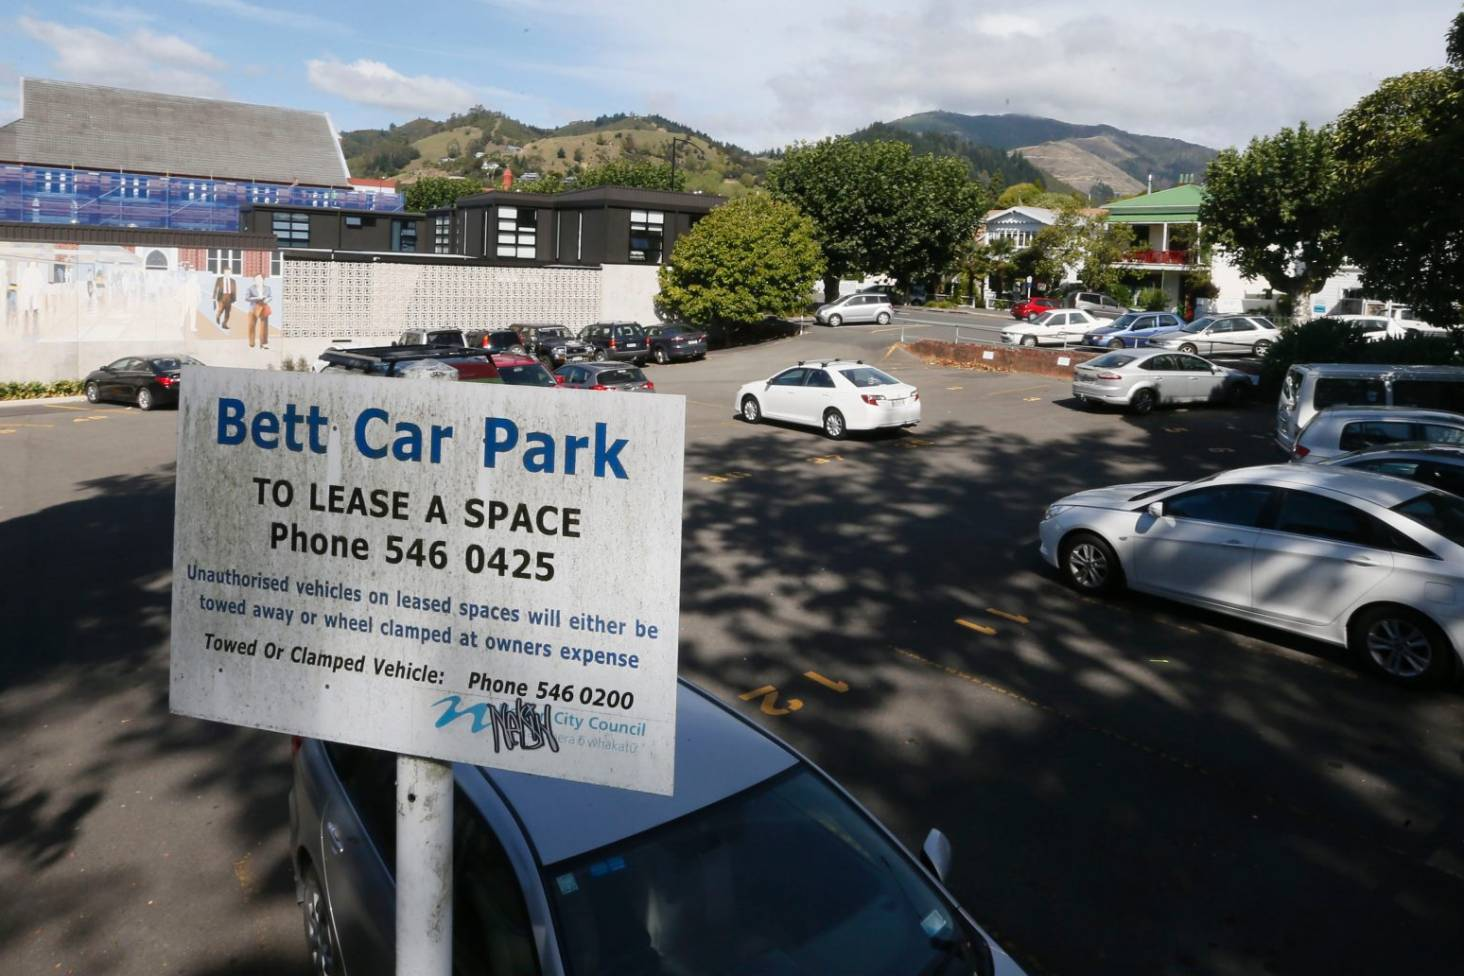 Bett Sale Nelson Residents Shut Out Of Bett Carpark Sale Deliberations